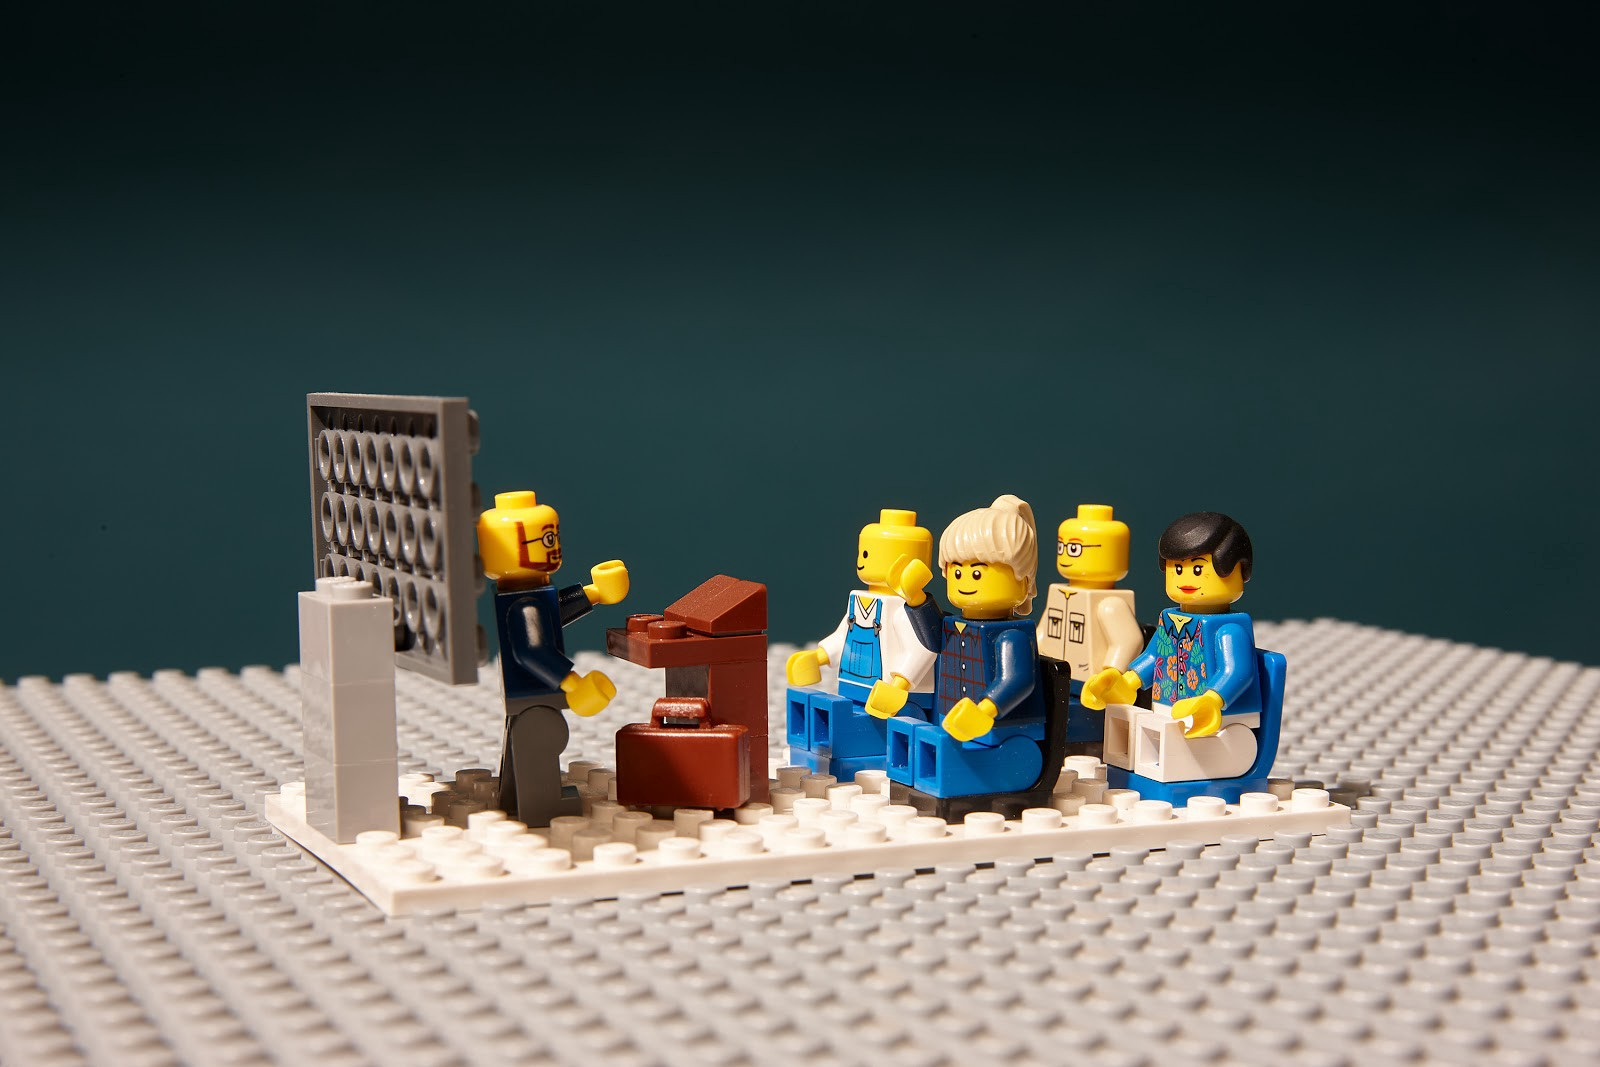 Lego people in a classroom